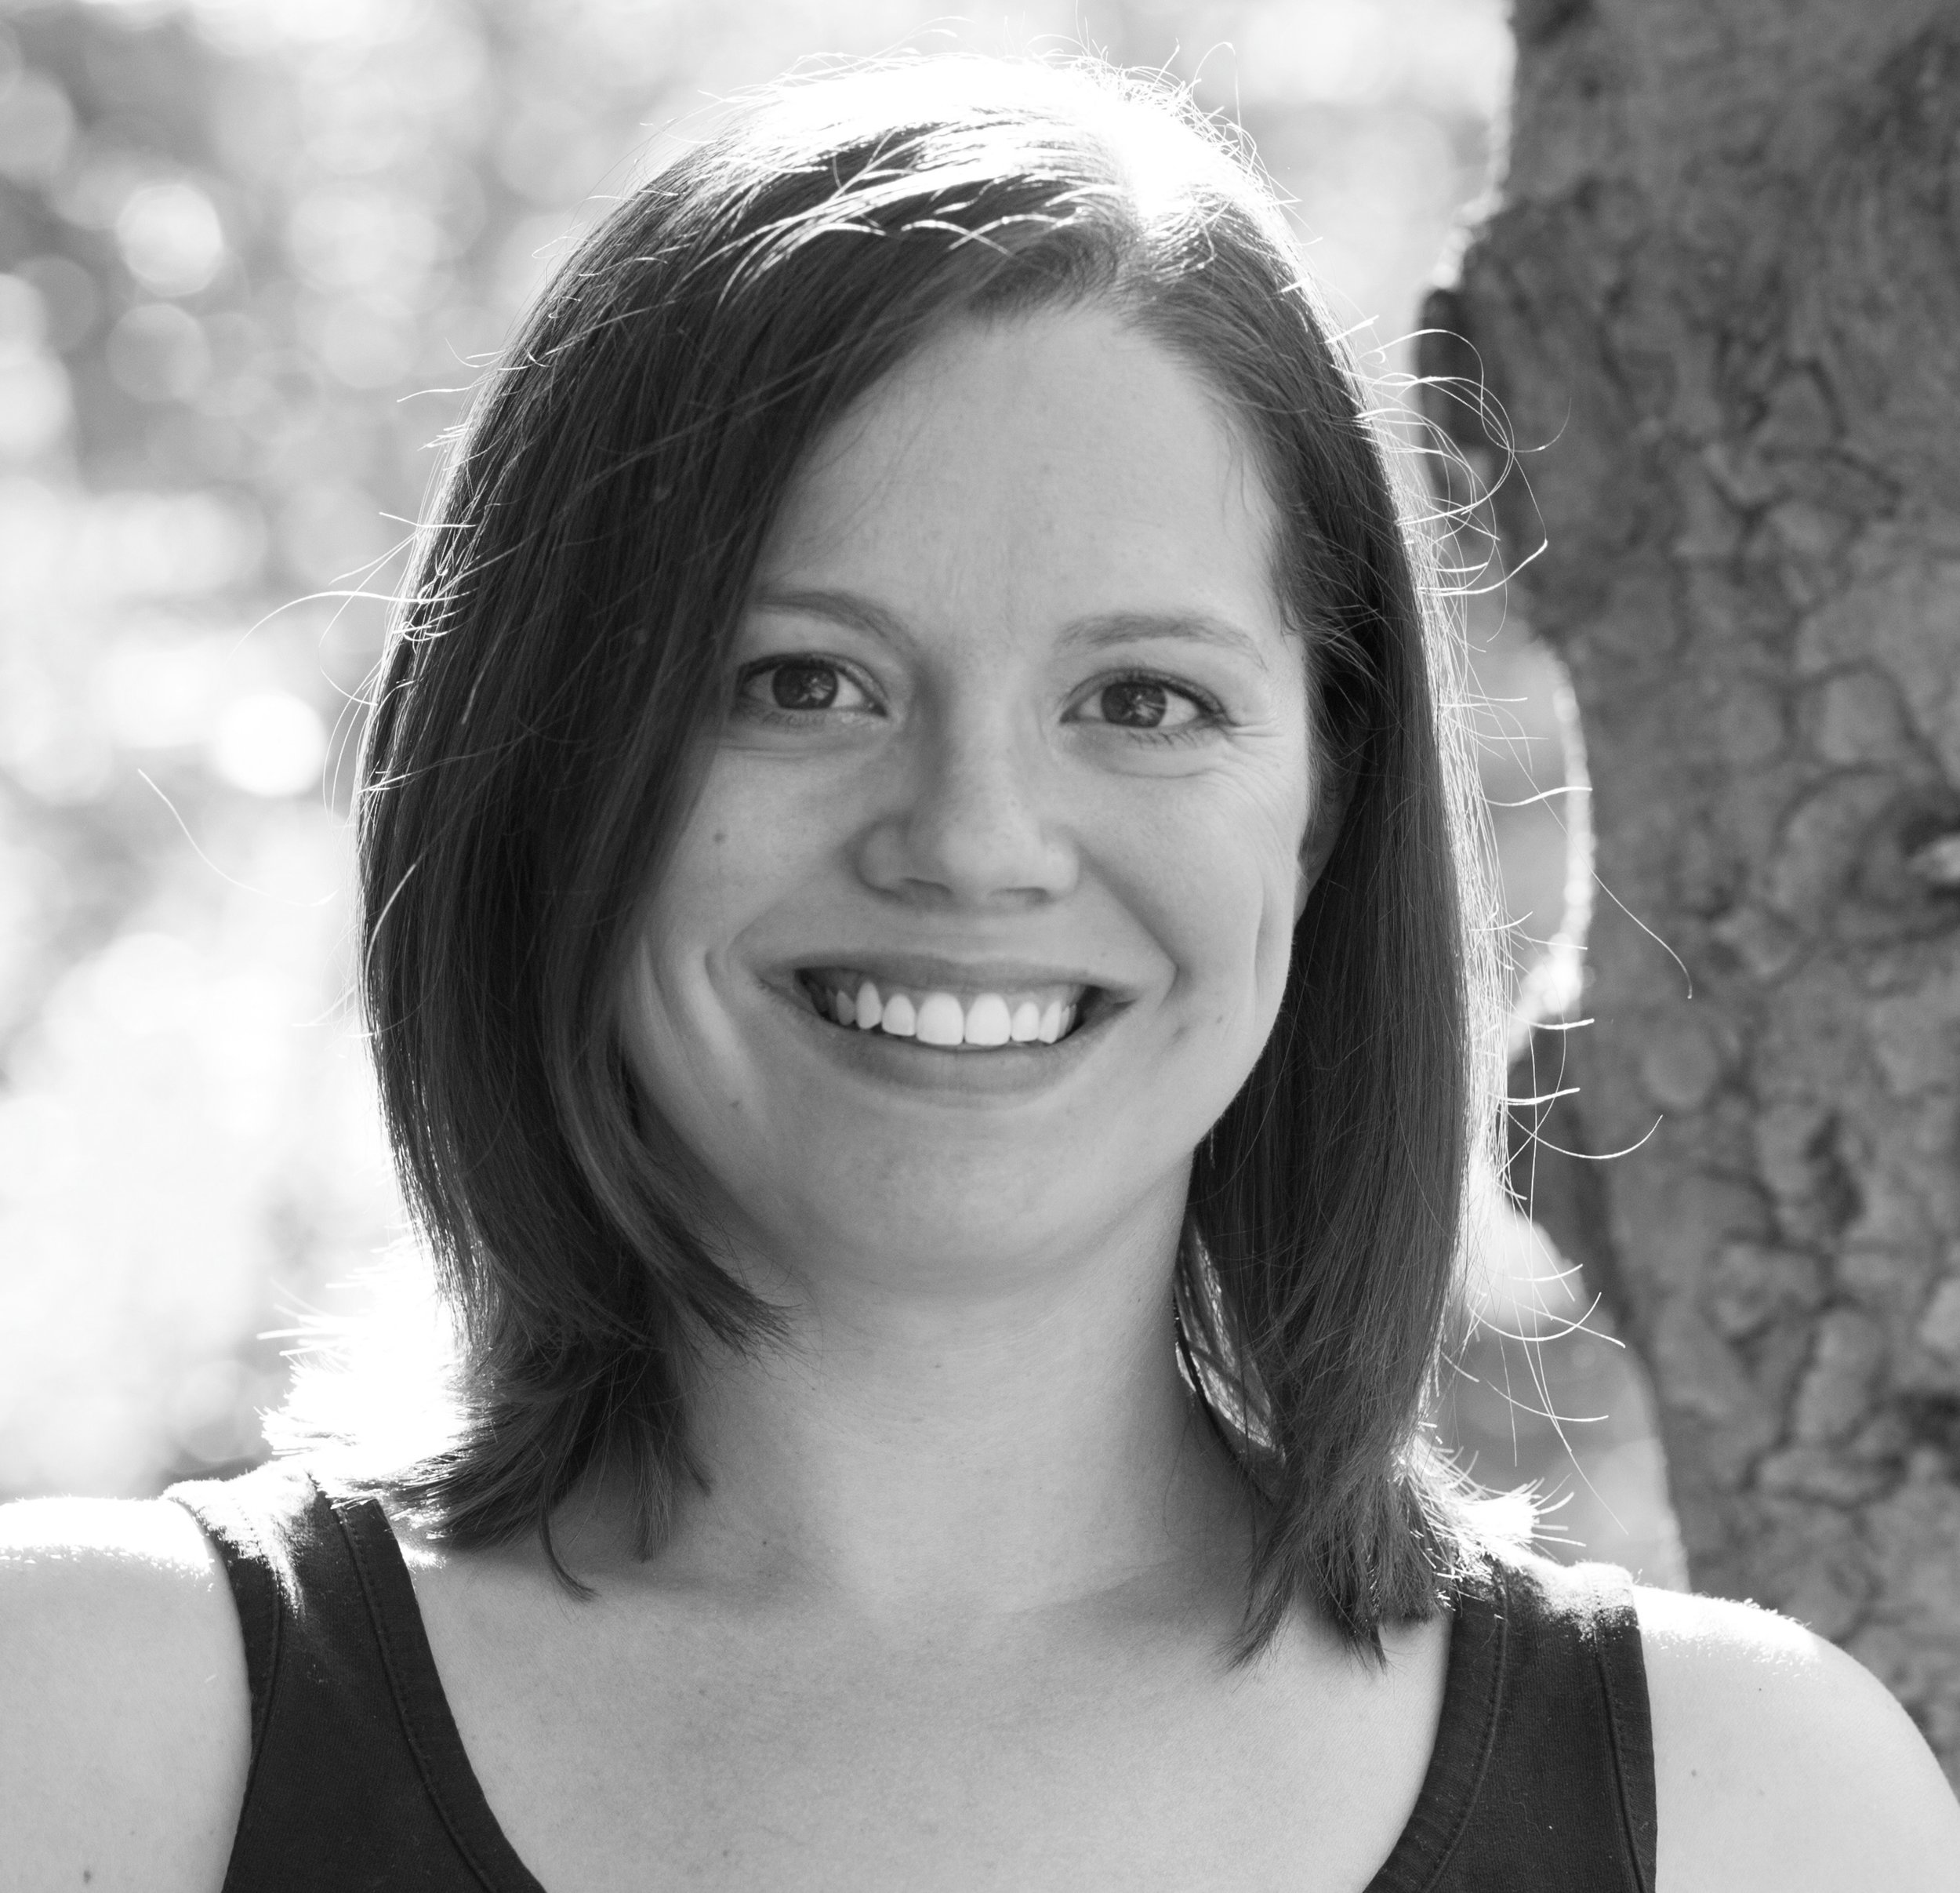 Traci Brimhall , author of  Saudade (forthcoming from Copper Canyon Press), Our Lady of the Ruins (W.W. Norton 2012), and  Rookery (Southern Illinois University Press 2010). Brimhall is the poetry judge for  Fugue 's 2017 Annual Writing Contest.